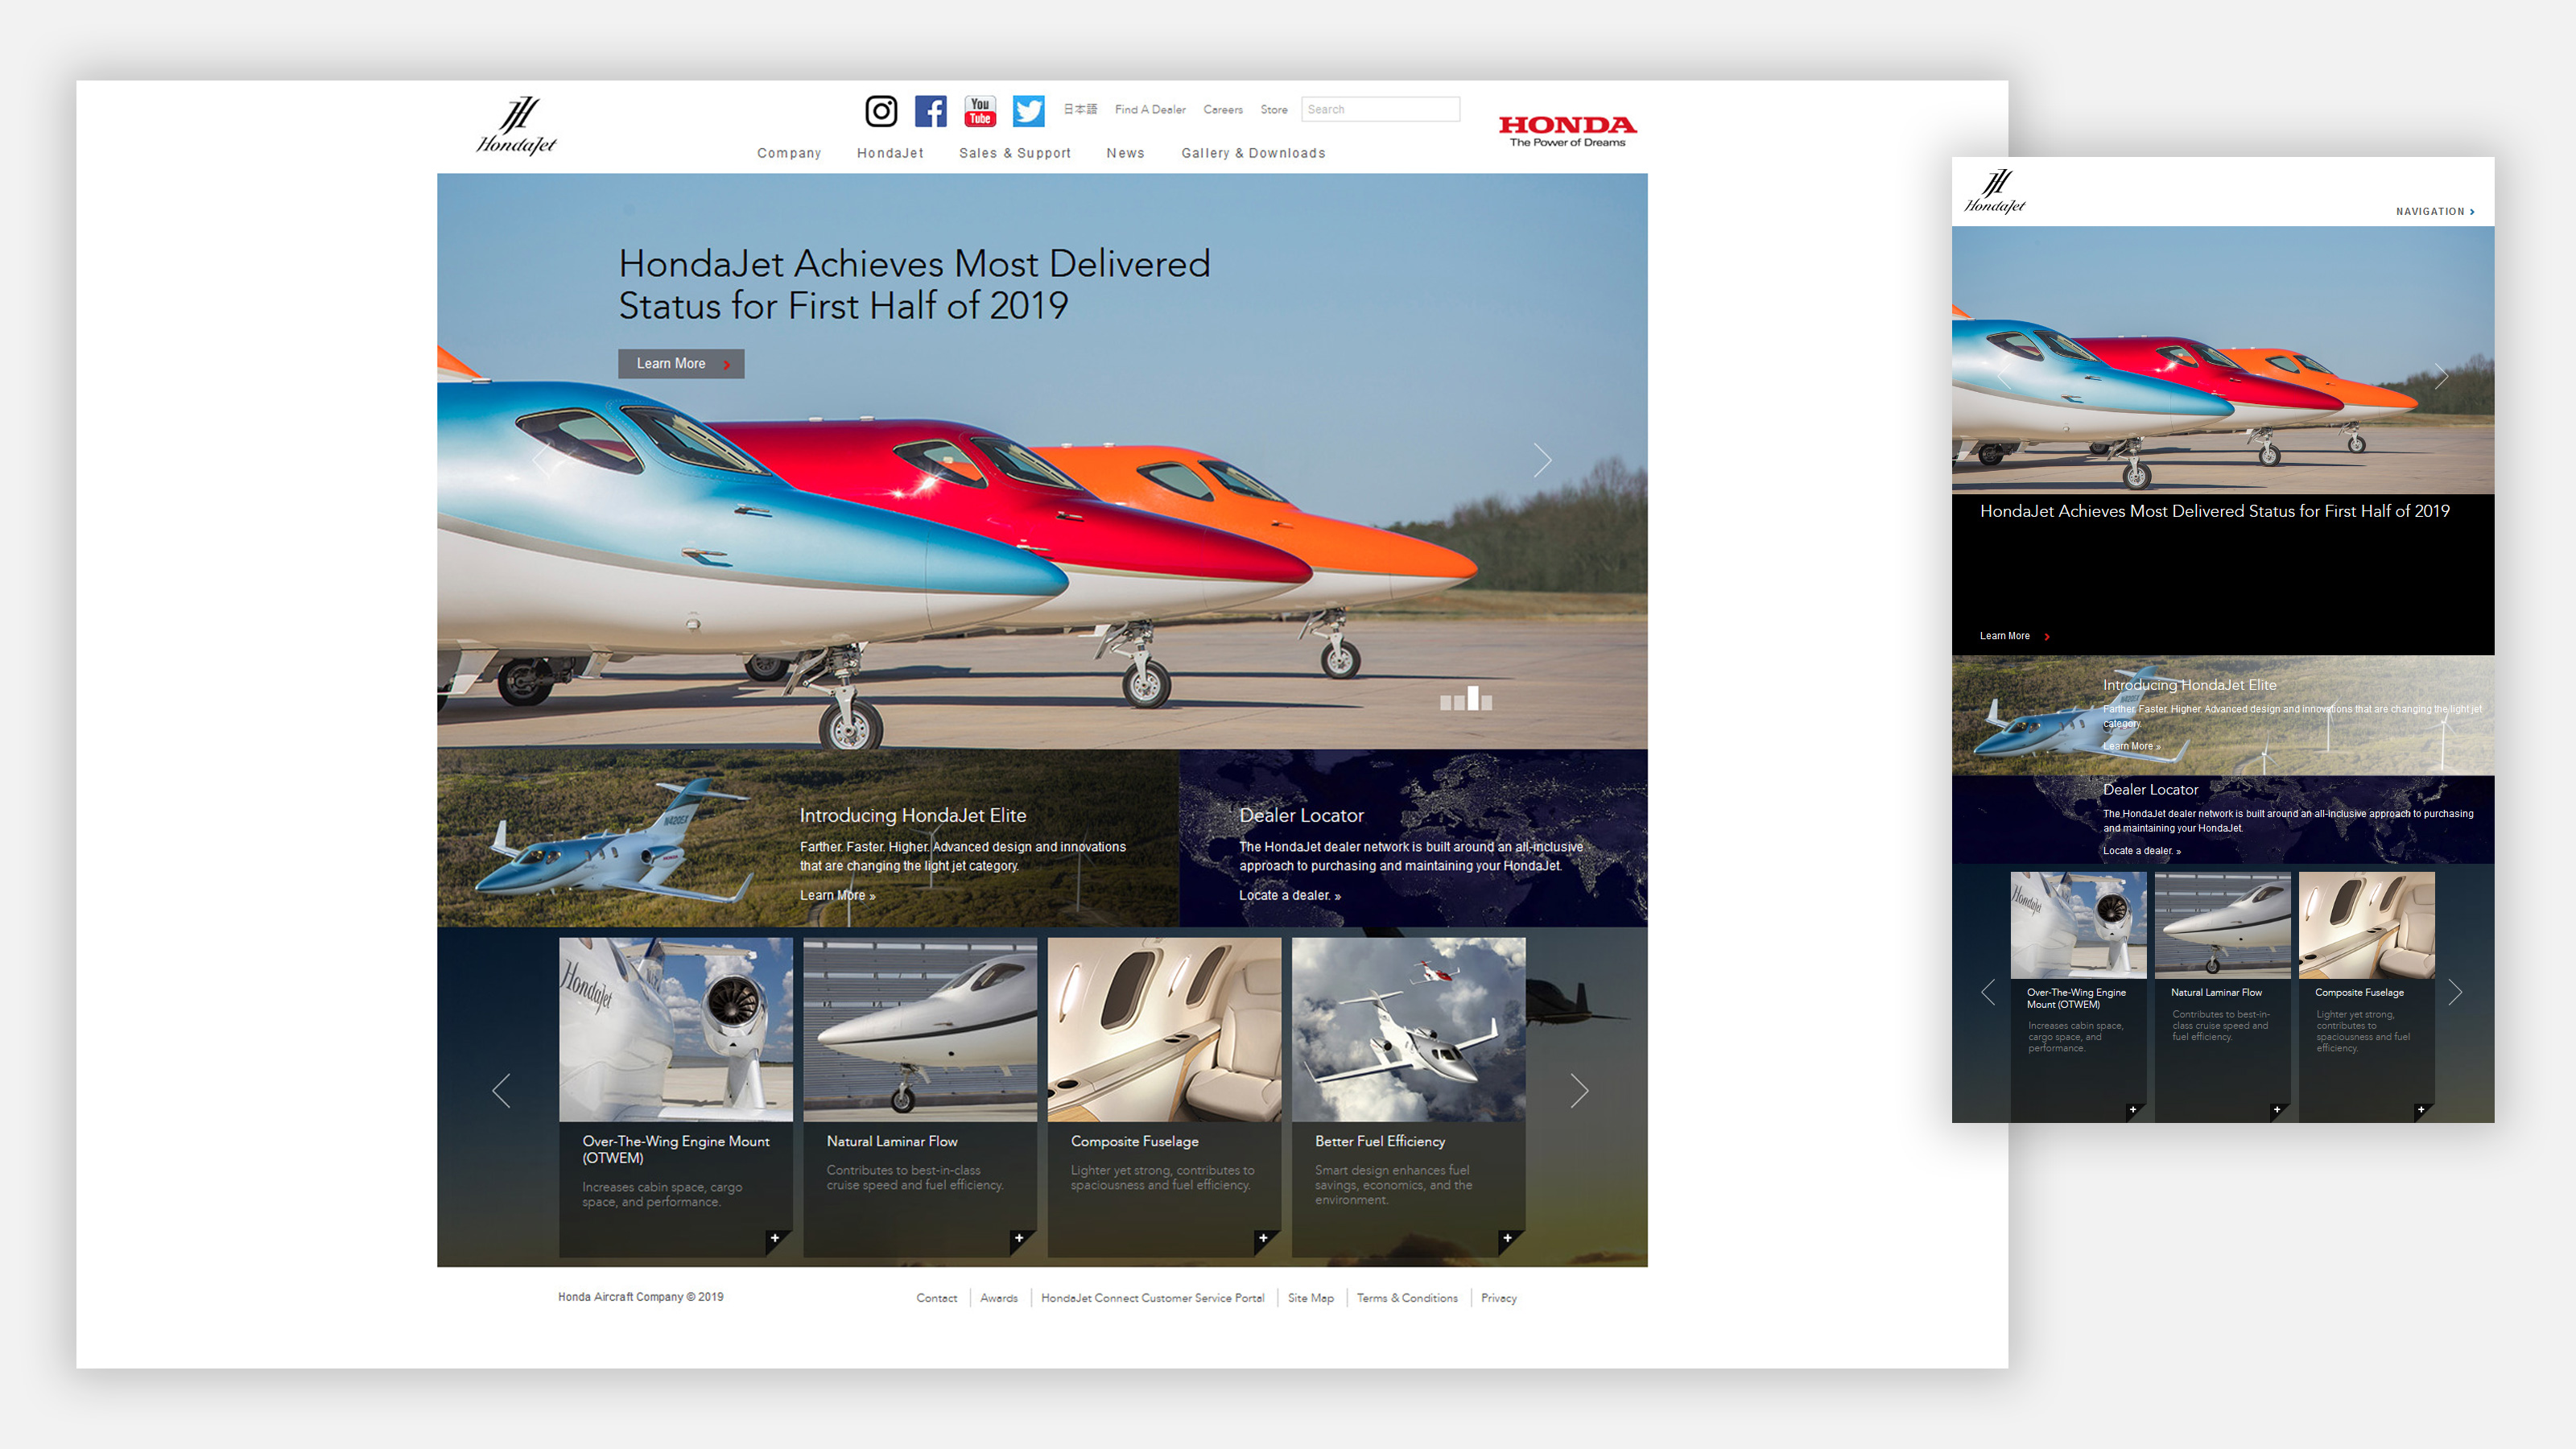 Honda jet website on mobile and desktop